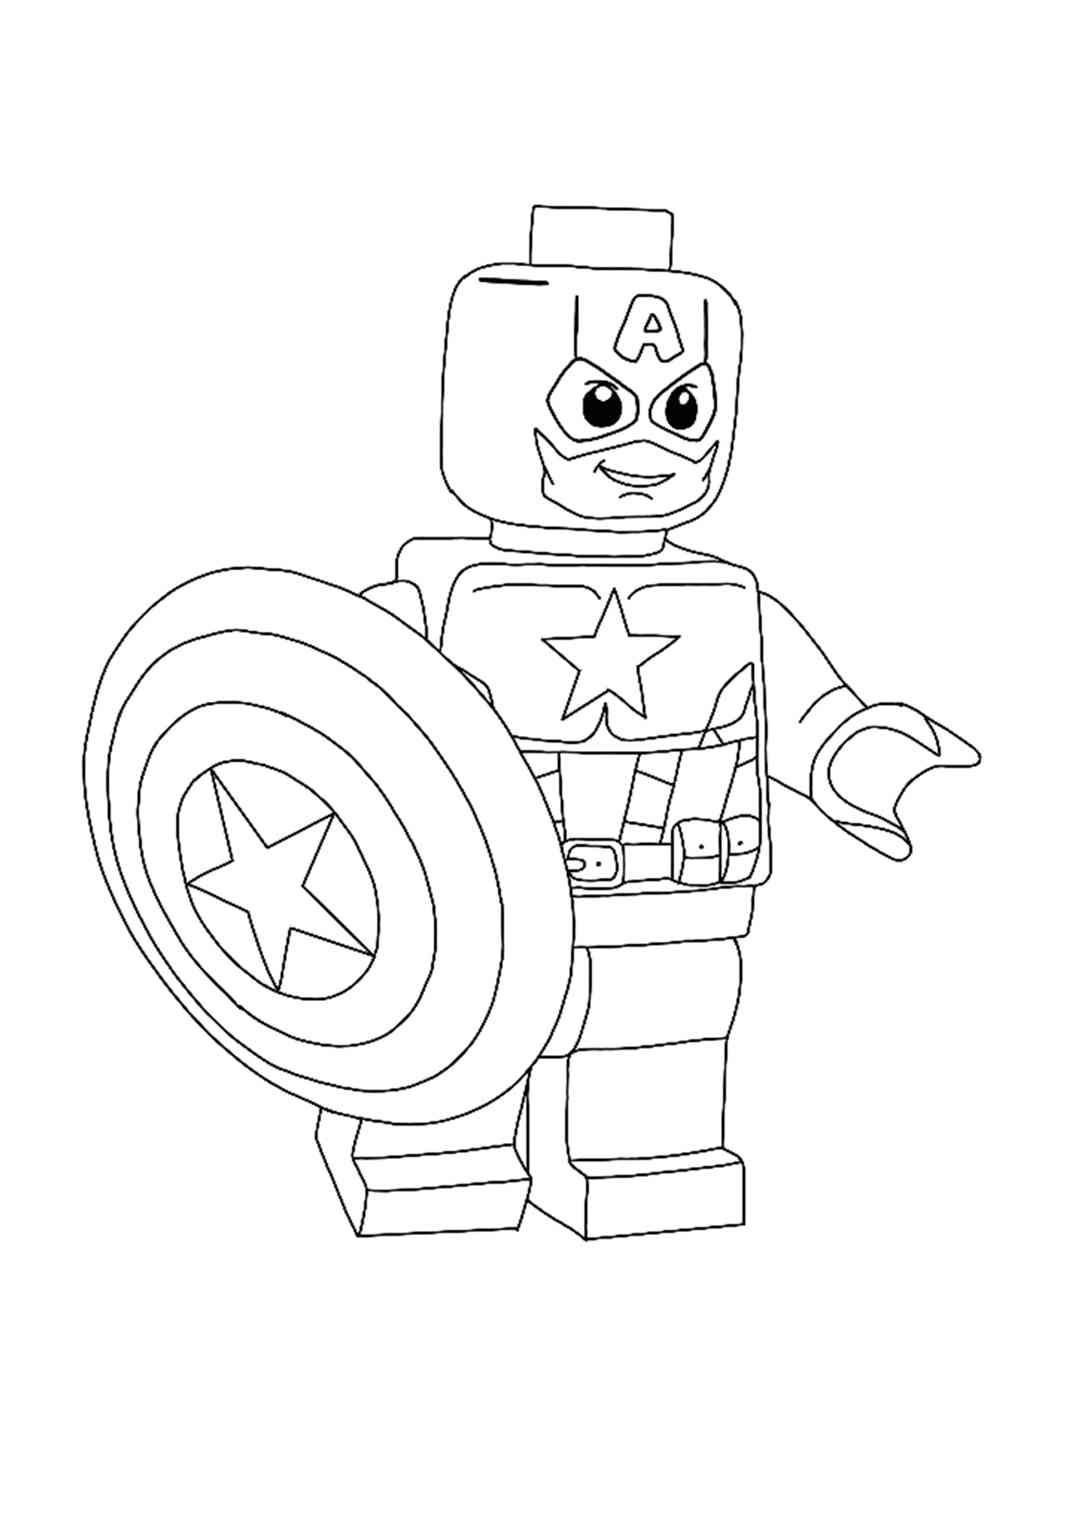 Lego Captain America Coloring Page Captain America Coloring Pages Lego Coloring Pages Avengers Coloring Pages